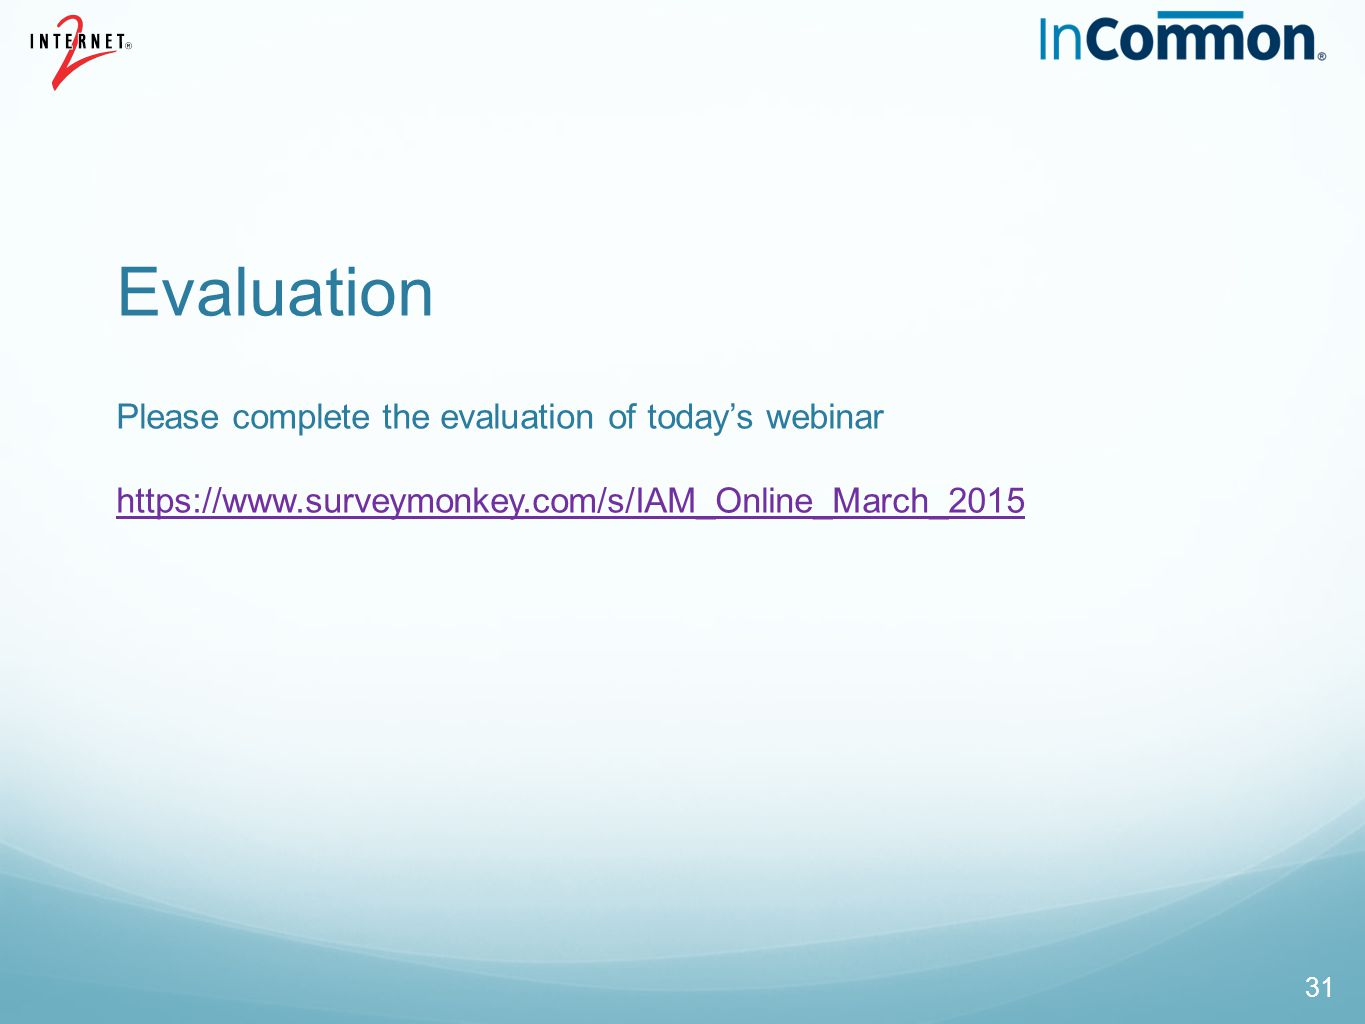 Evaluation Please complete the evaluation of today's webinar https://www.surveymonkey.com/s/IAM_Online_March_2015 https://www.surveymonkey.com/s/IAM_O